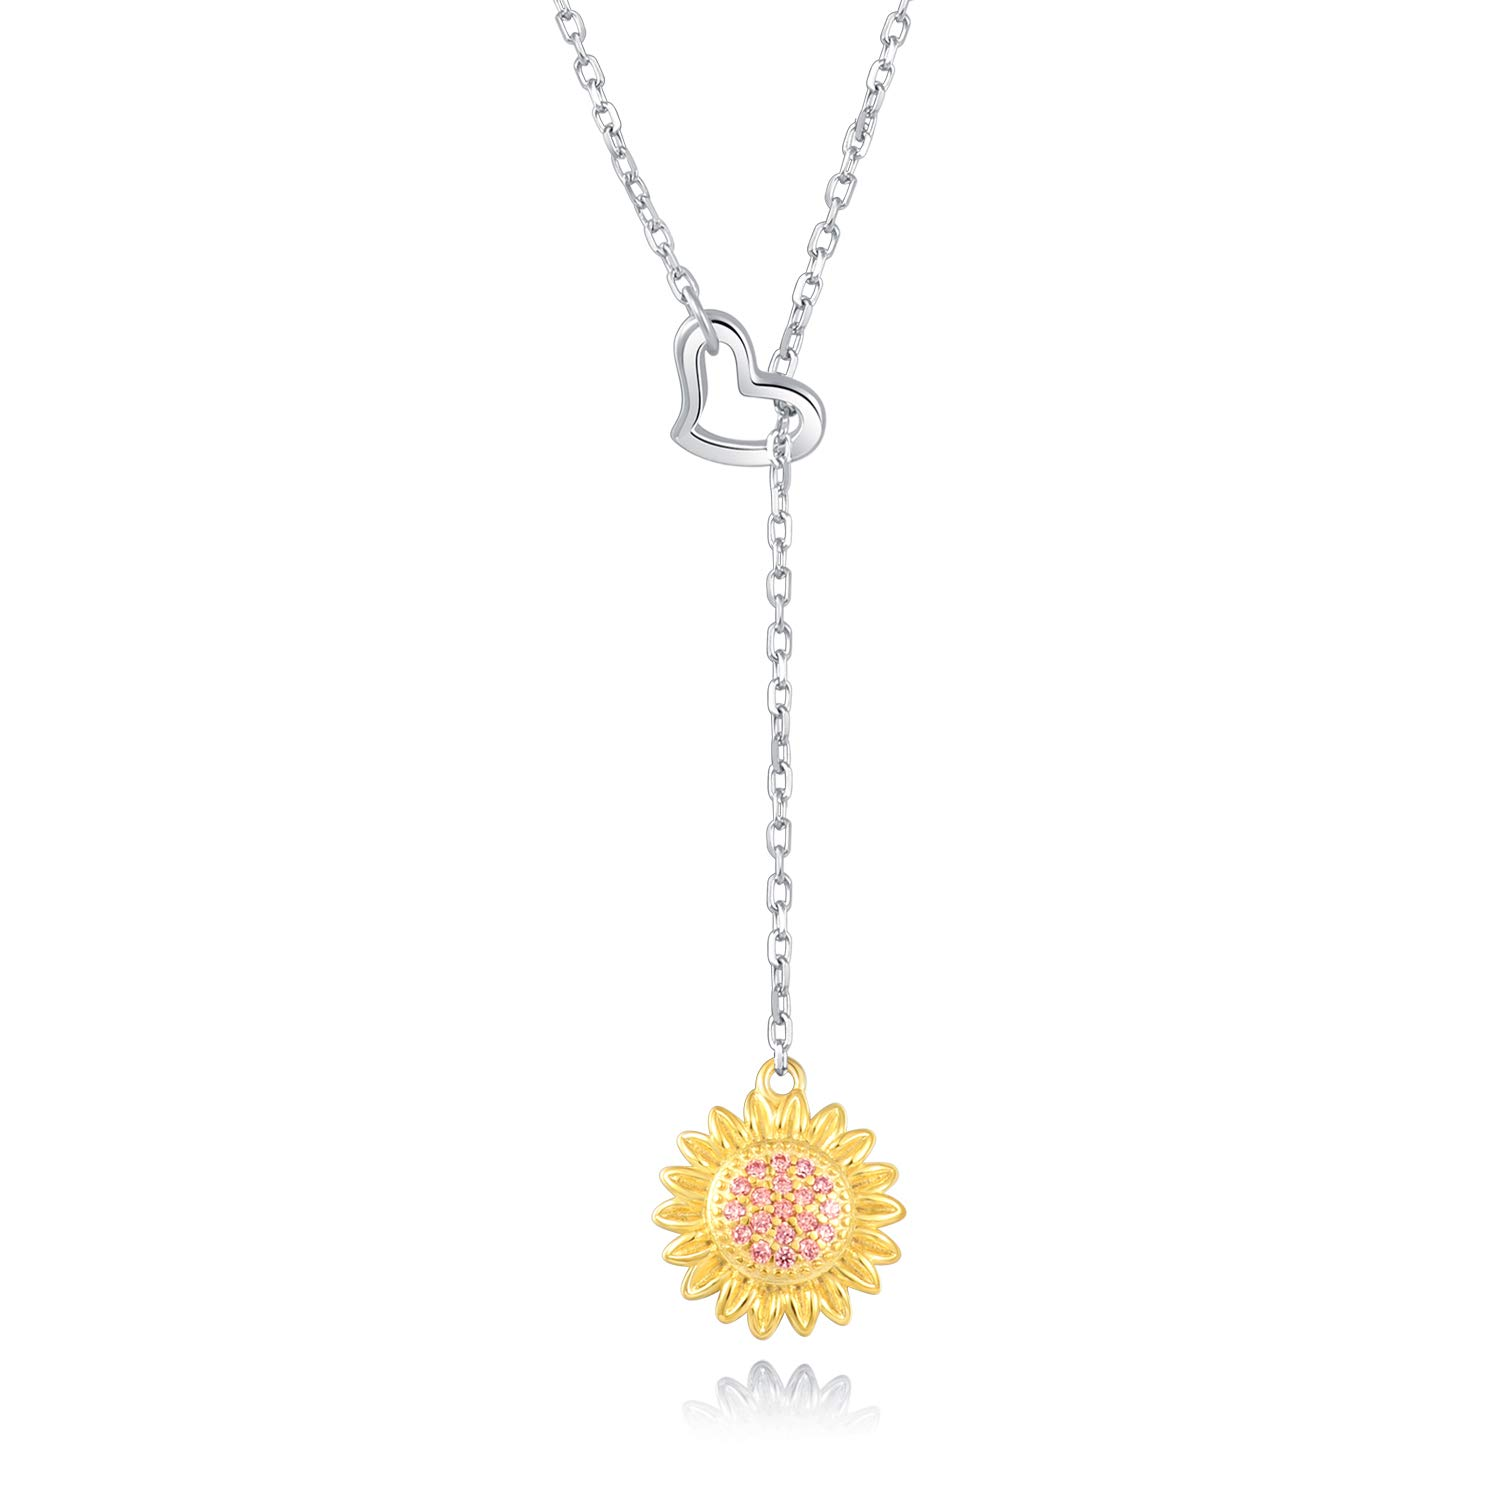 Freeco 925 Sterling Silver Sunflower with CZ Warmth Positivity Jewelry Y Pendant Necklace for Women Girls by FREECO